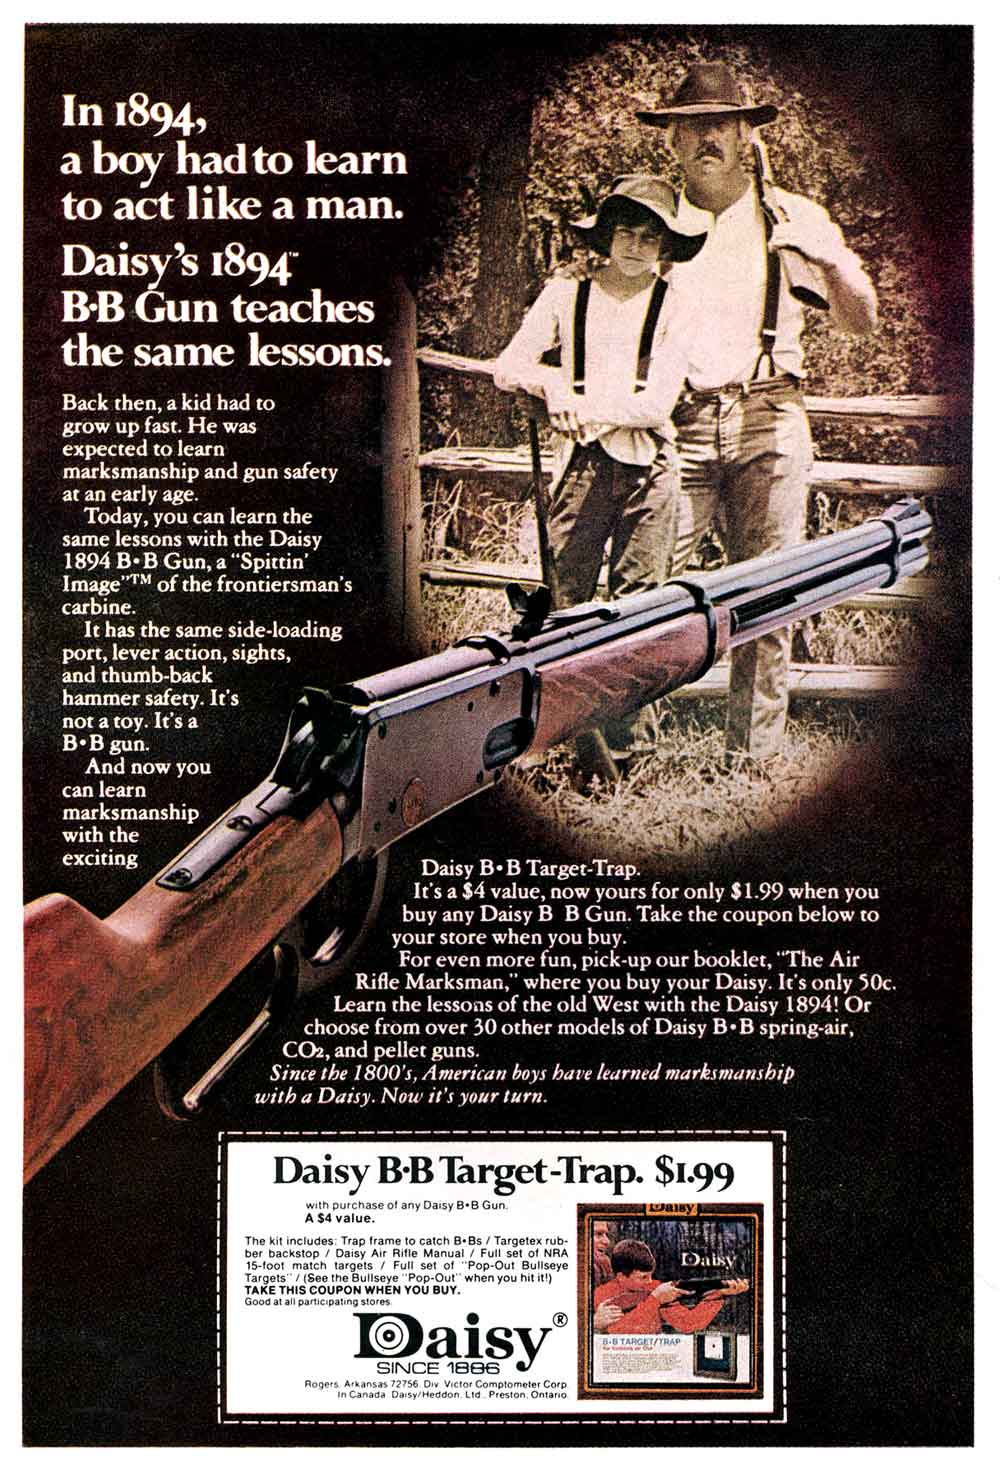 In 1894, a Boy Had to Act Like a Man (Daisy Air Rifles) - Monster